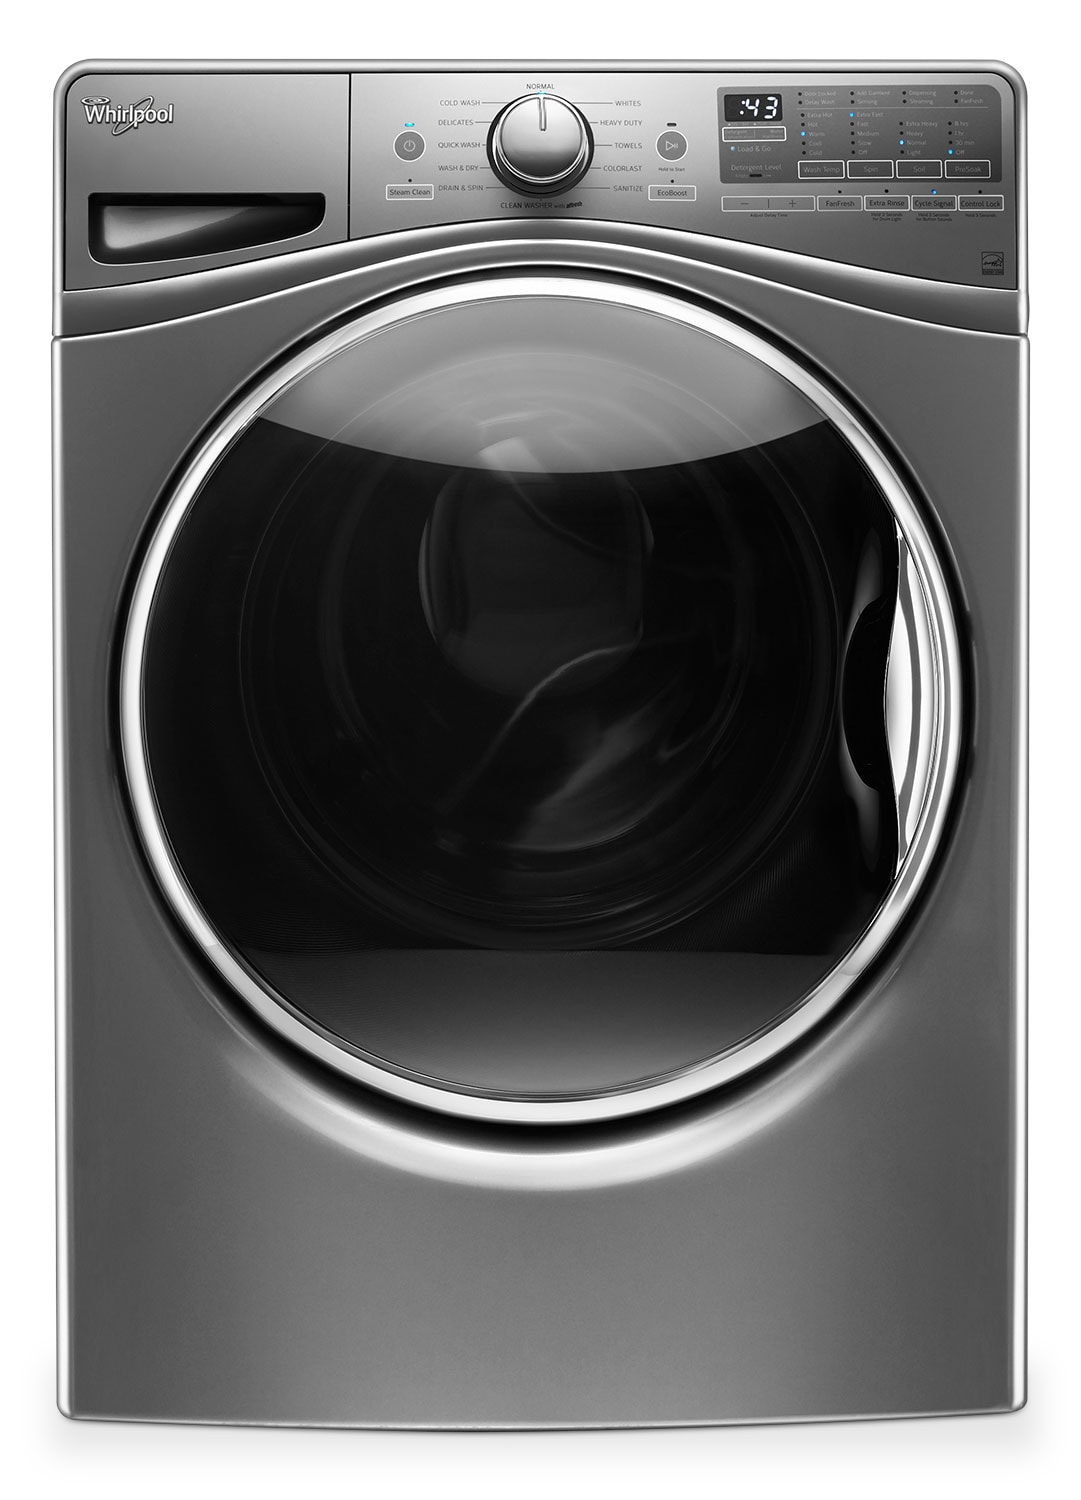 Whirlpool Chrome Shadow Front-Load Washer (5.2 Cu. Ft.) - WFW92HEFC